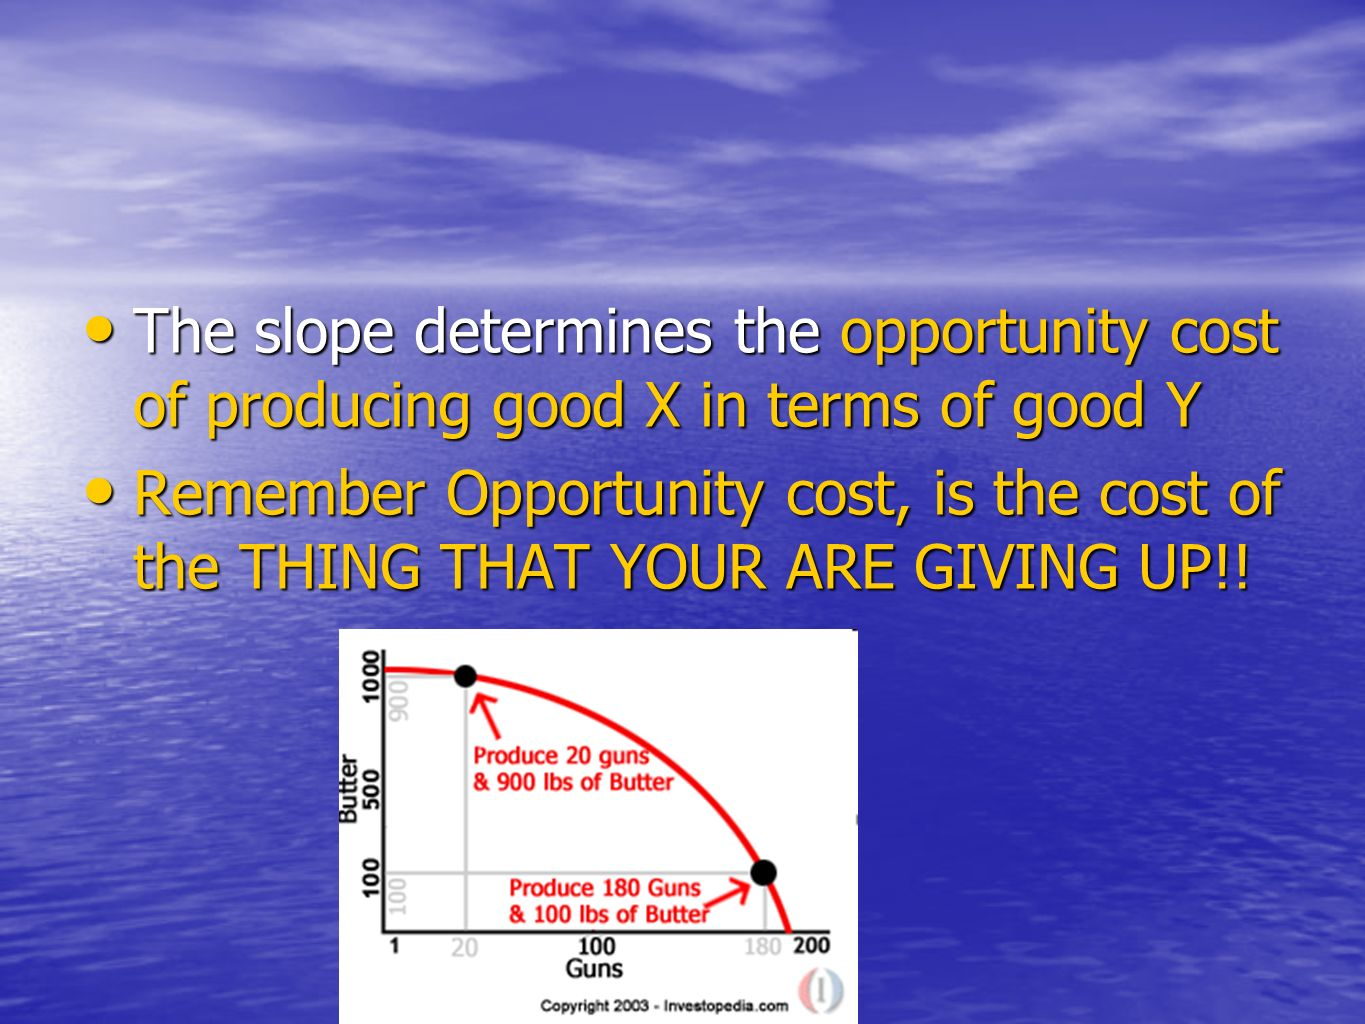 The slope determines the opportunity cost of producing good X in terms of good Y